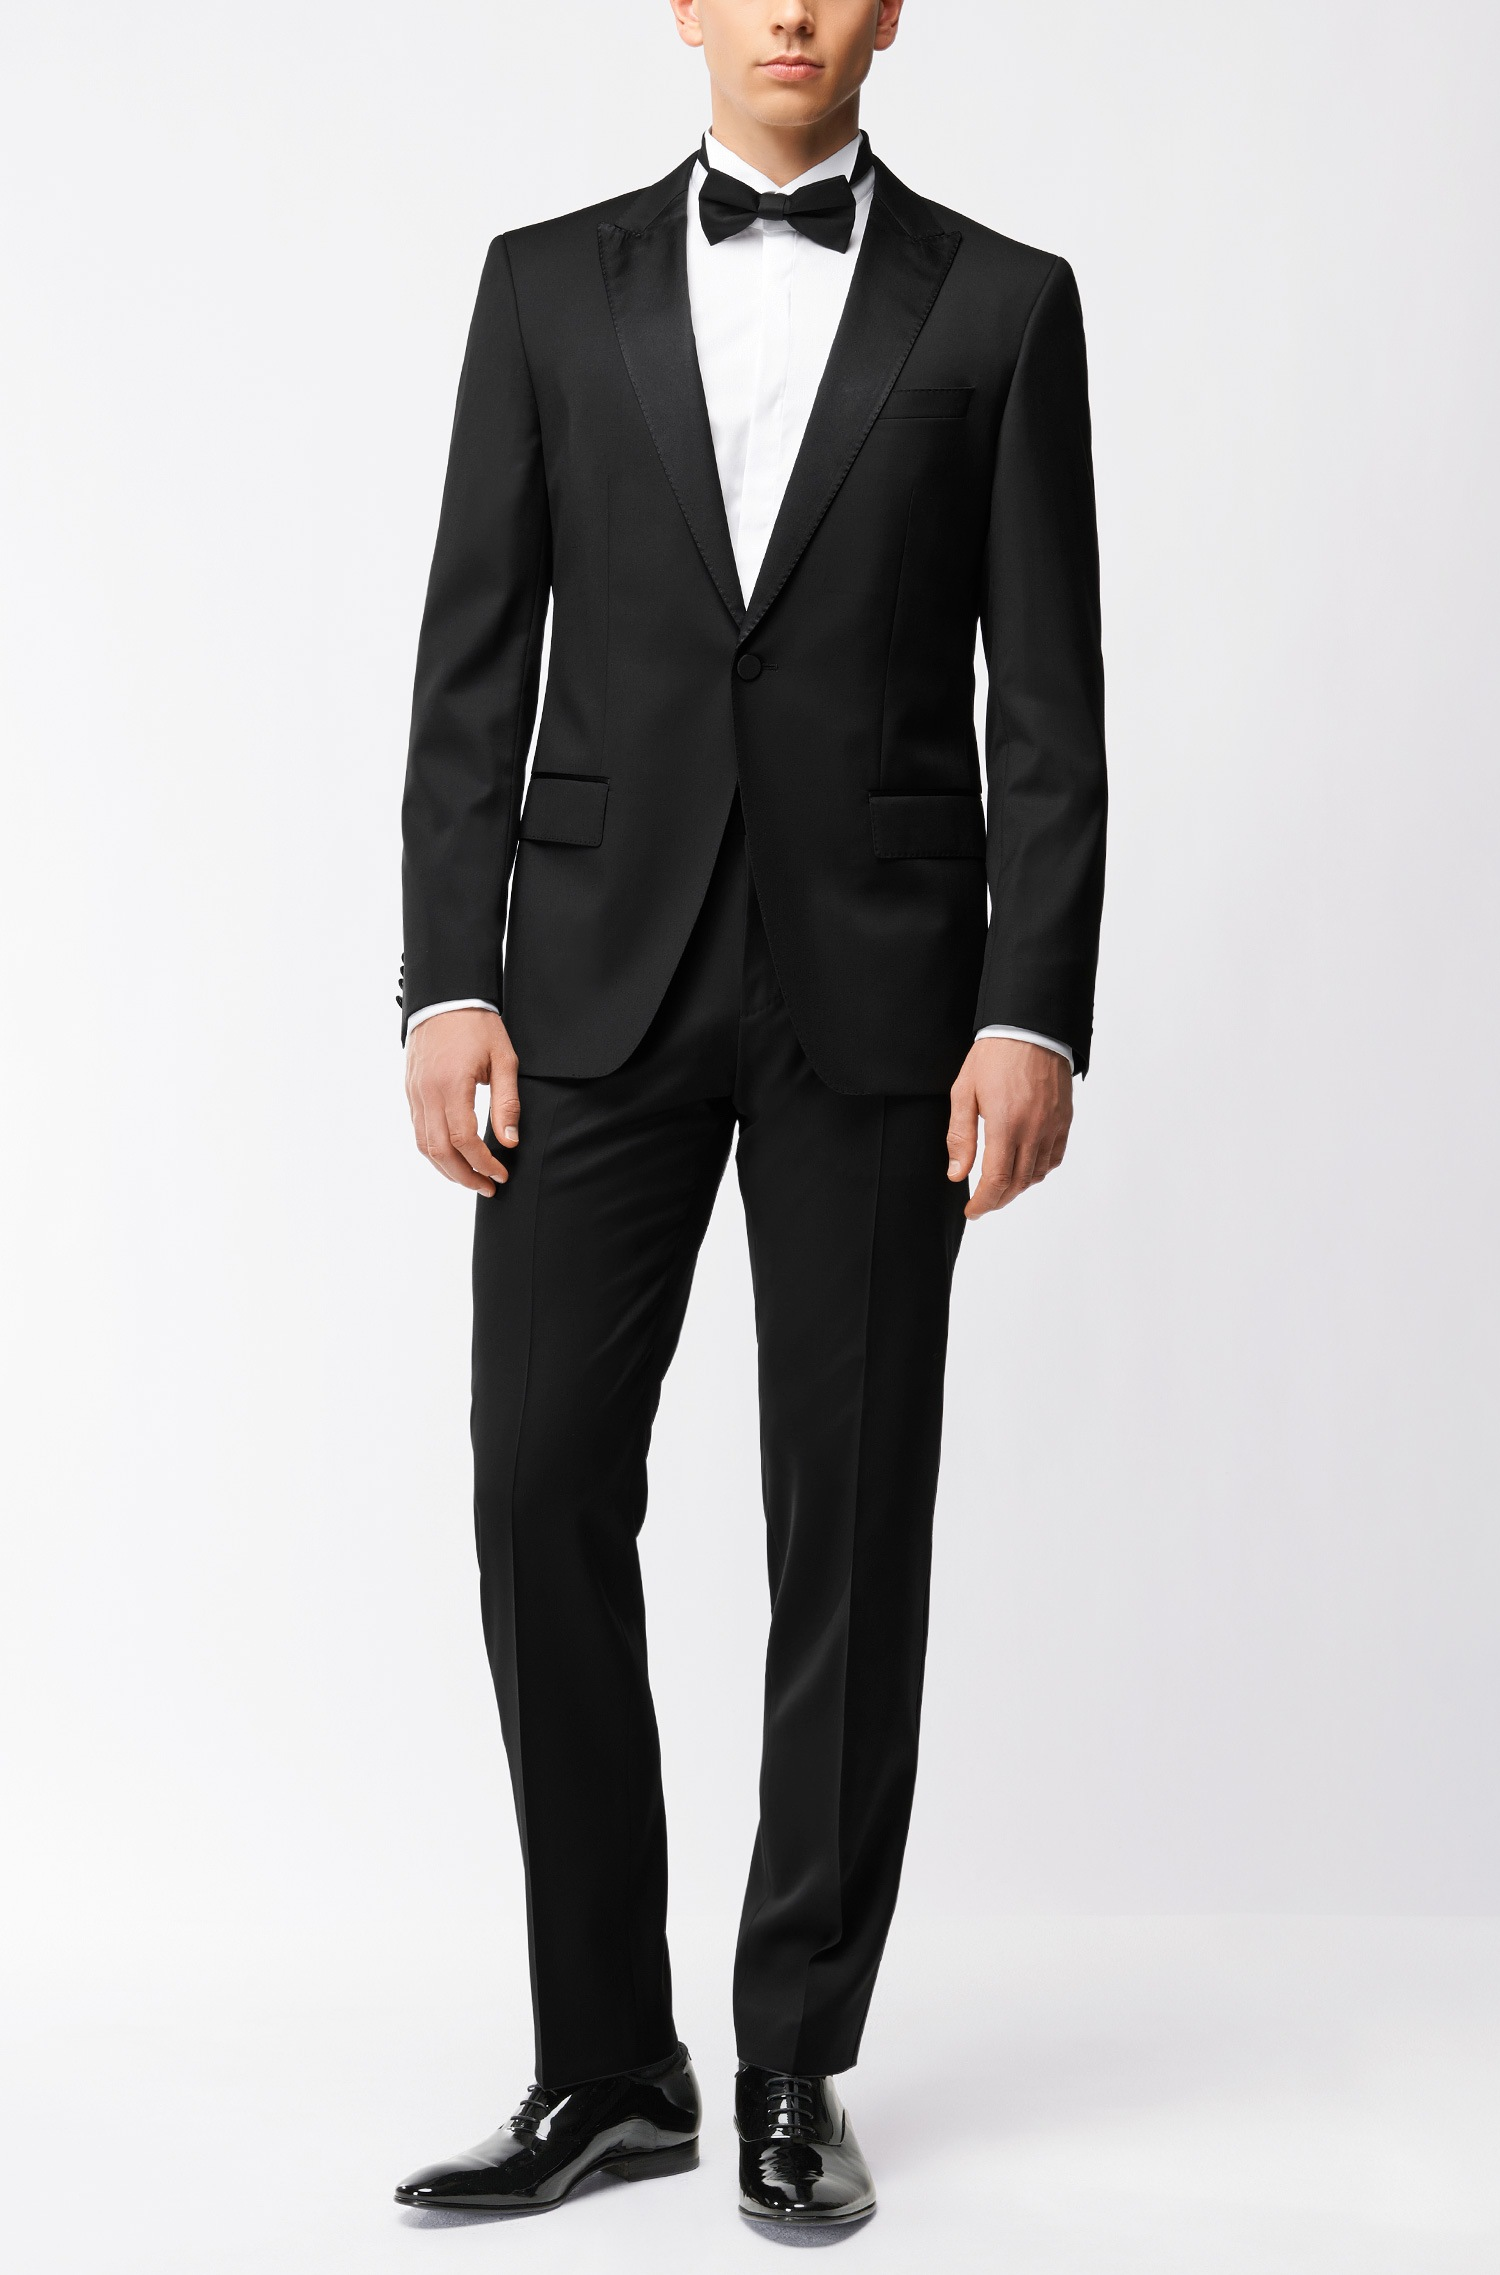 Abito da sposo Hugo Boss slim fit in lana vergine con finiture in seta